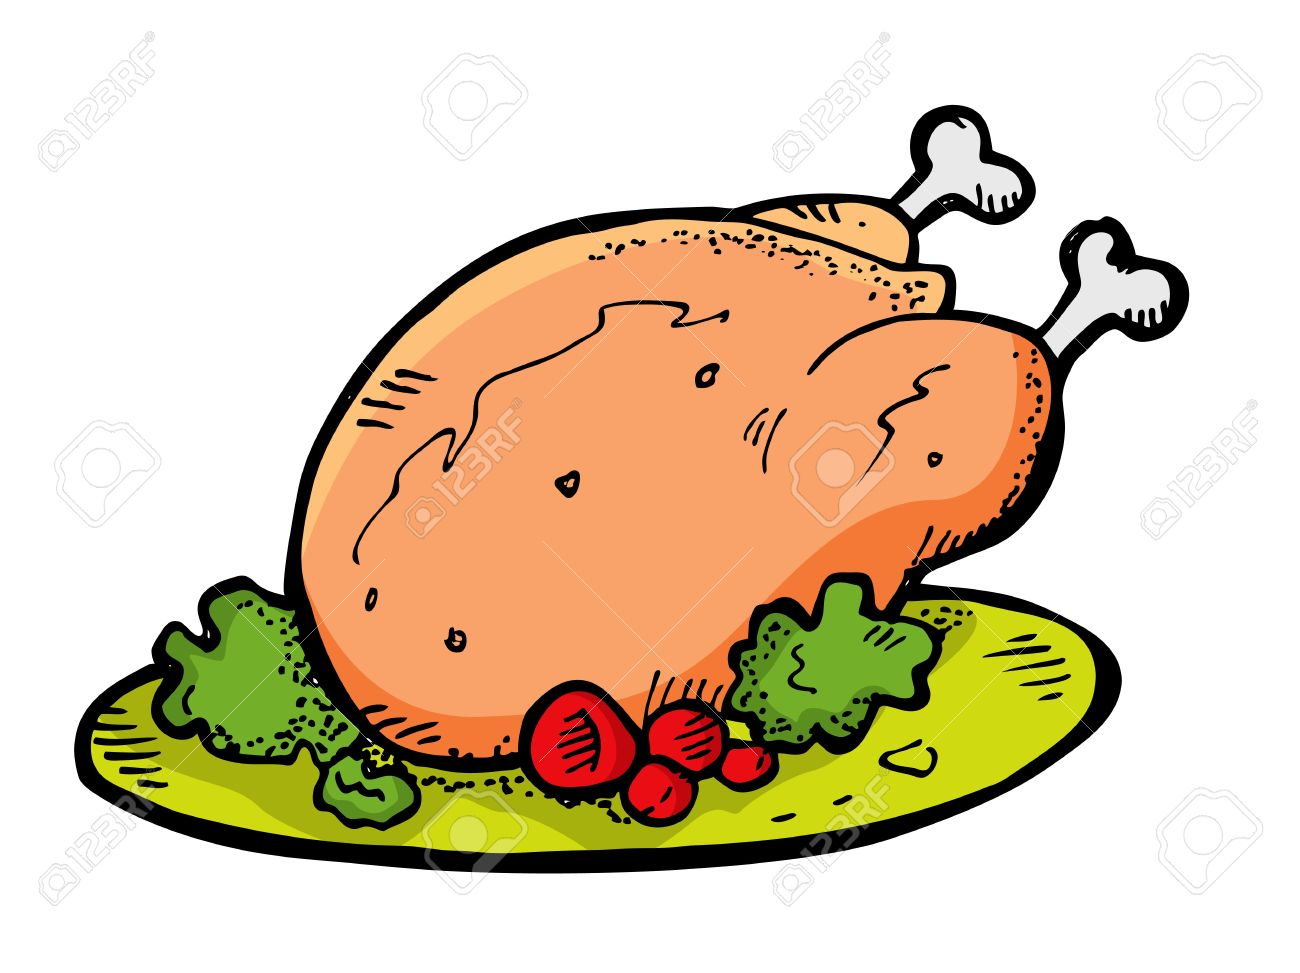 1300x973 Chick Clipart Roasted Chicken